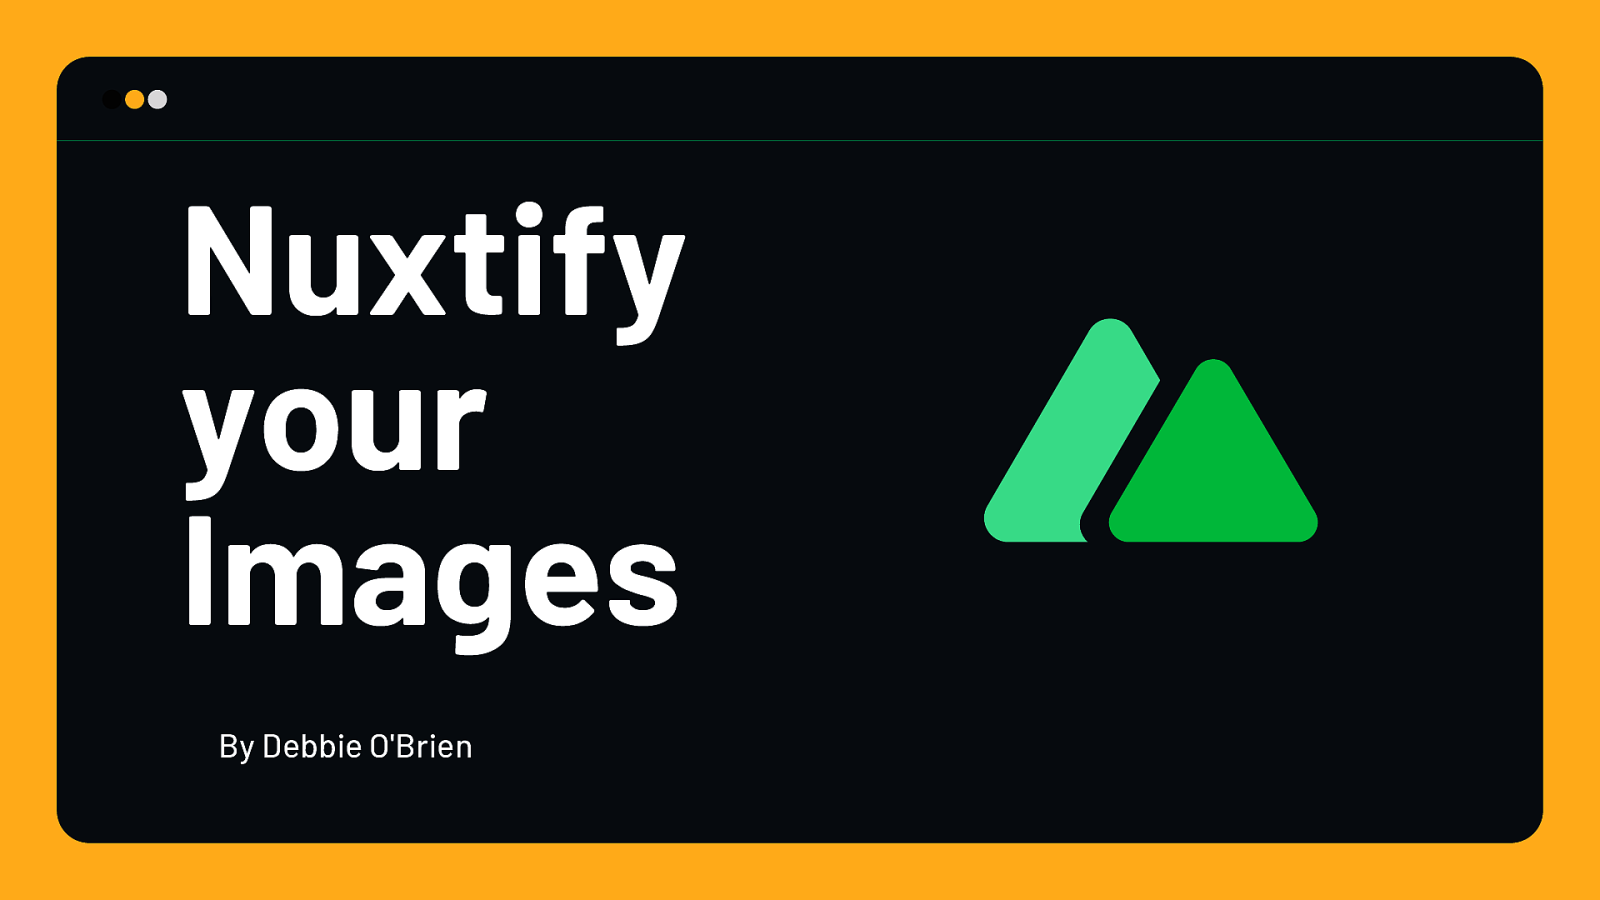 Nuxtify your Images